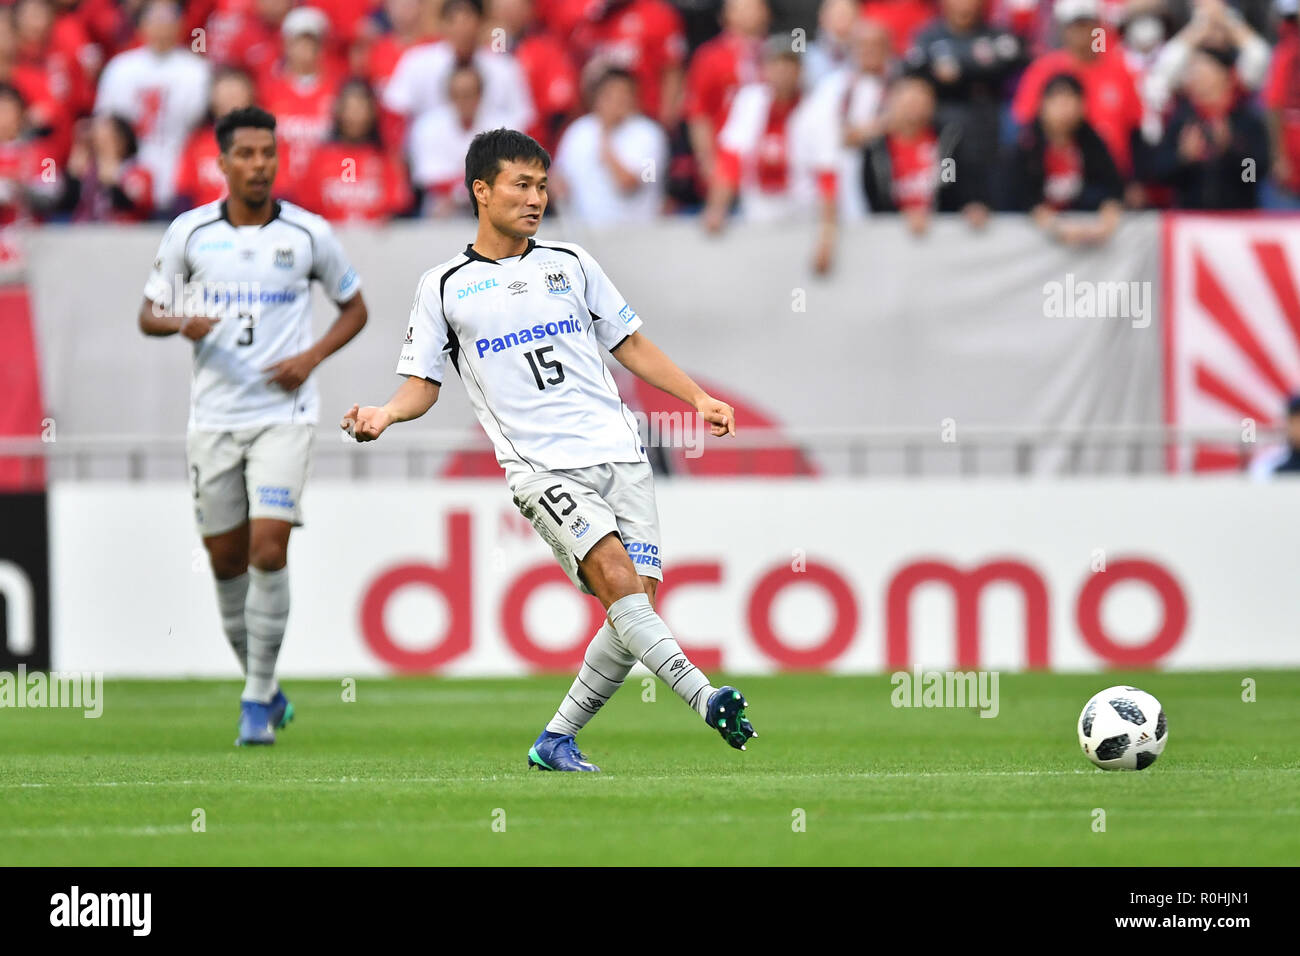 Yasuyuki Konno Gamba November 3 2018 Football Soccer 2018 J1 League Match Between Urawa Red Diamonds 1 3 Gamba Osaka At Saitama Stadium 2002 In Saitama Japan Photo By Aflo Stock Photo Alamy